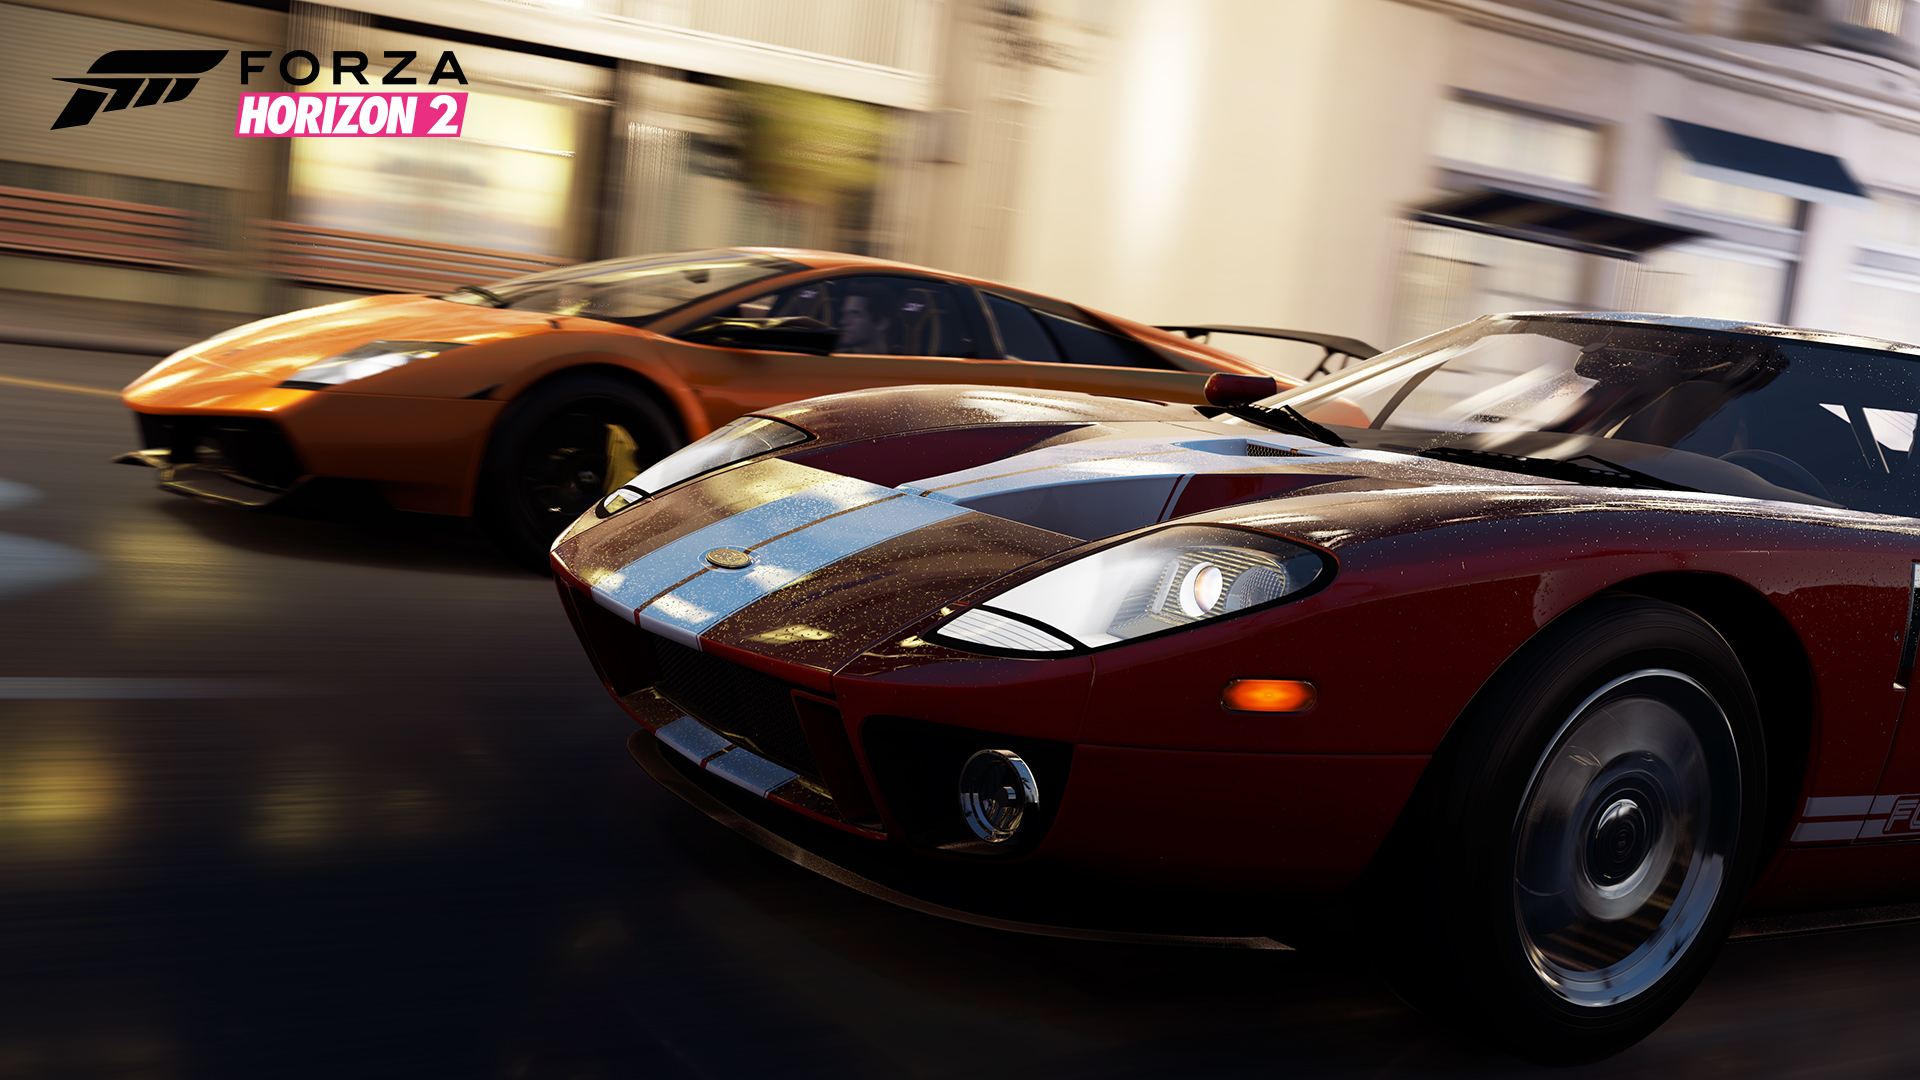 Reviews_04_WM_ForzaHorizon2